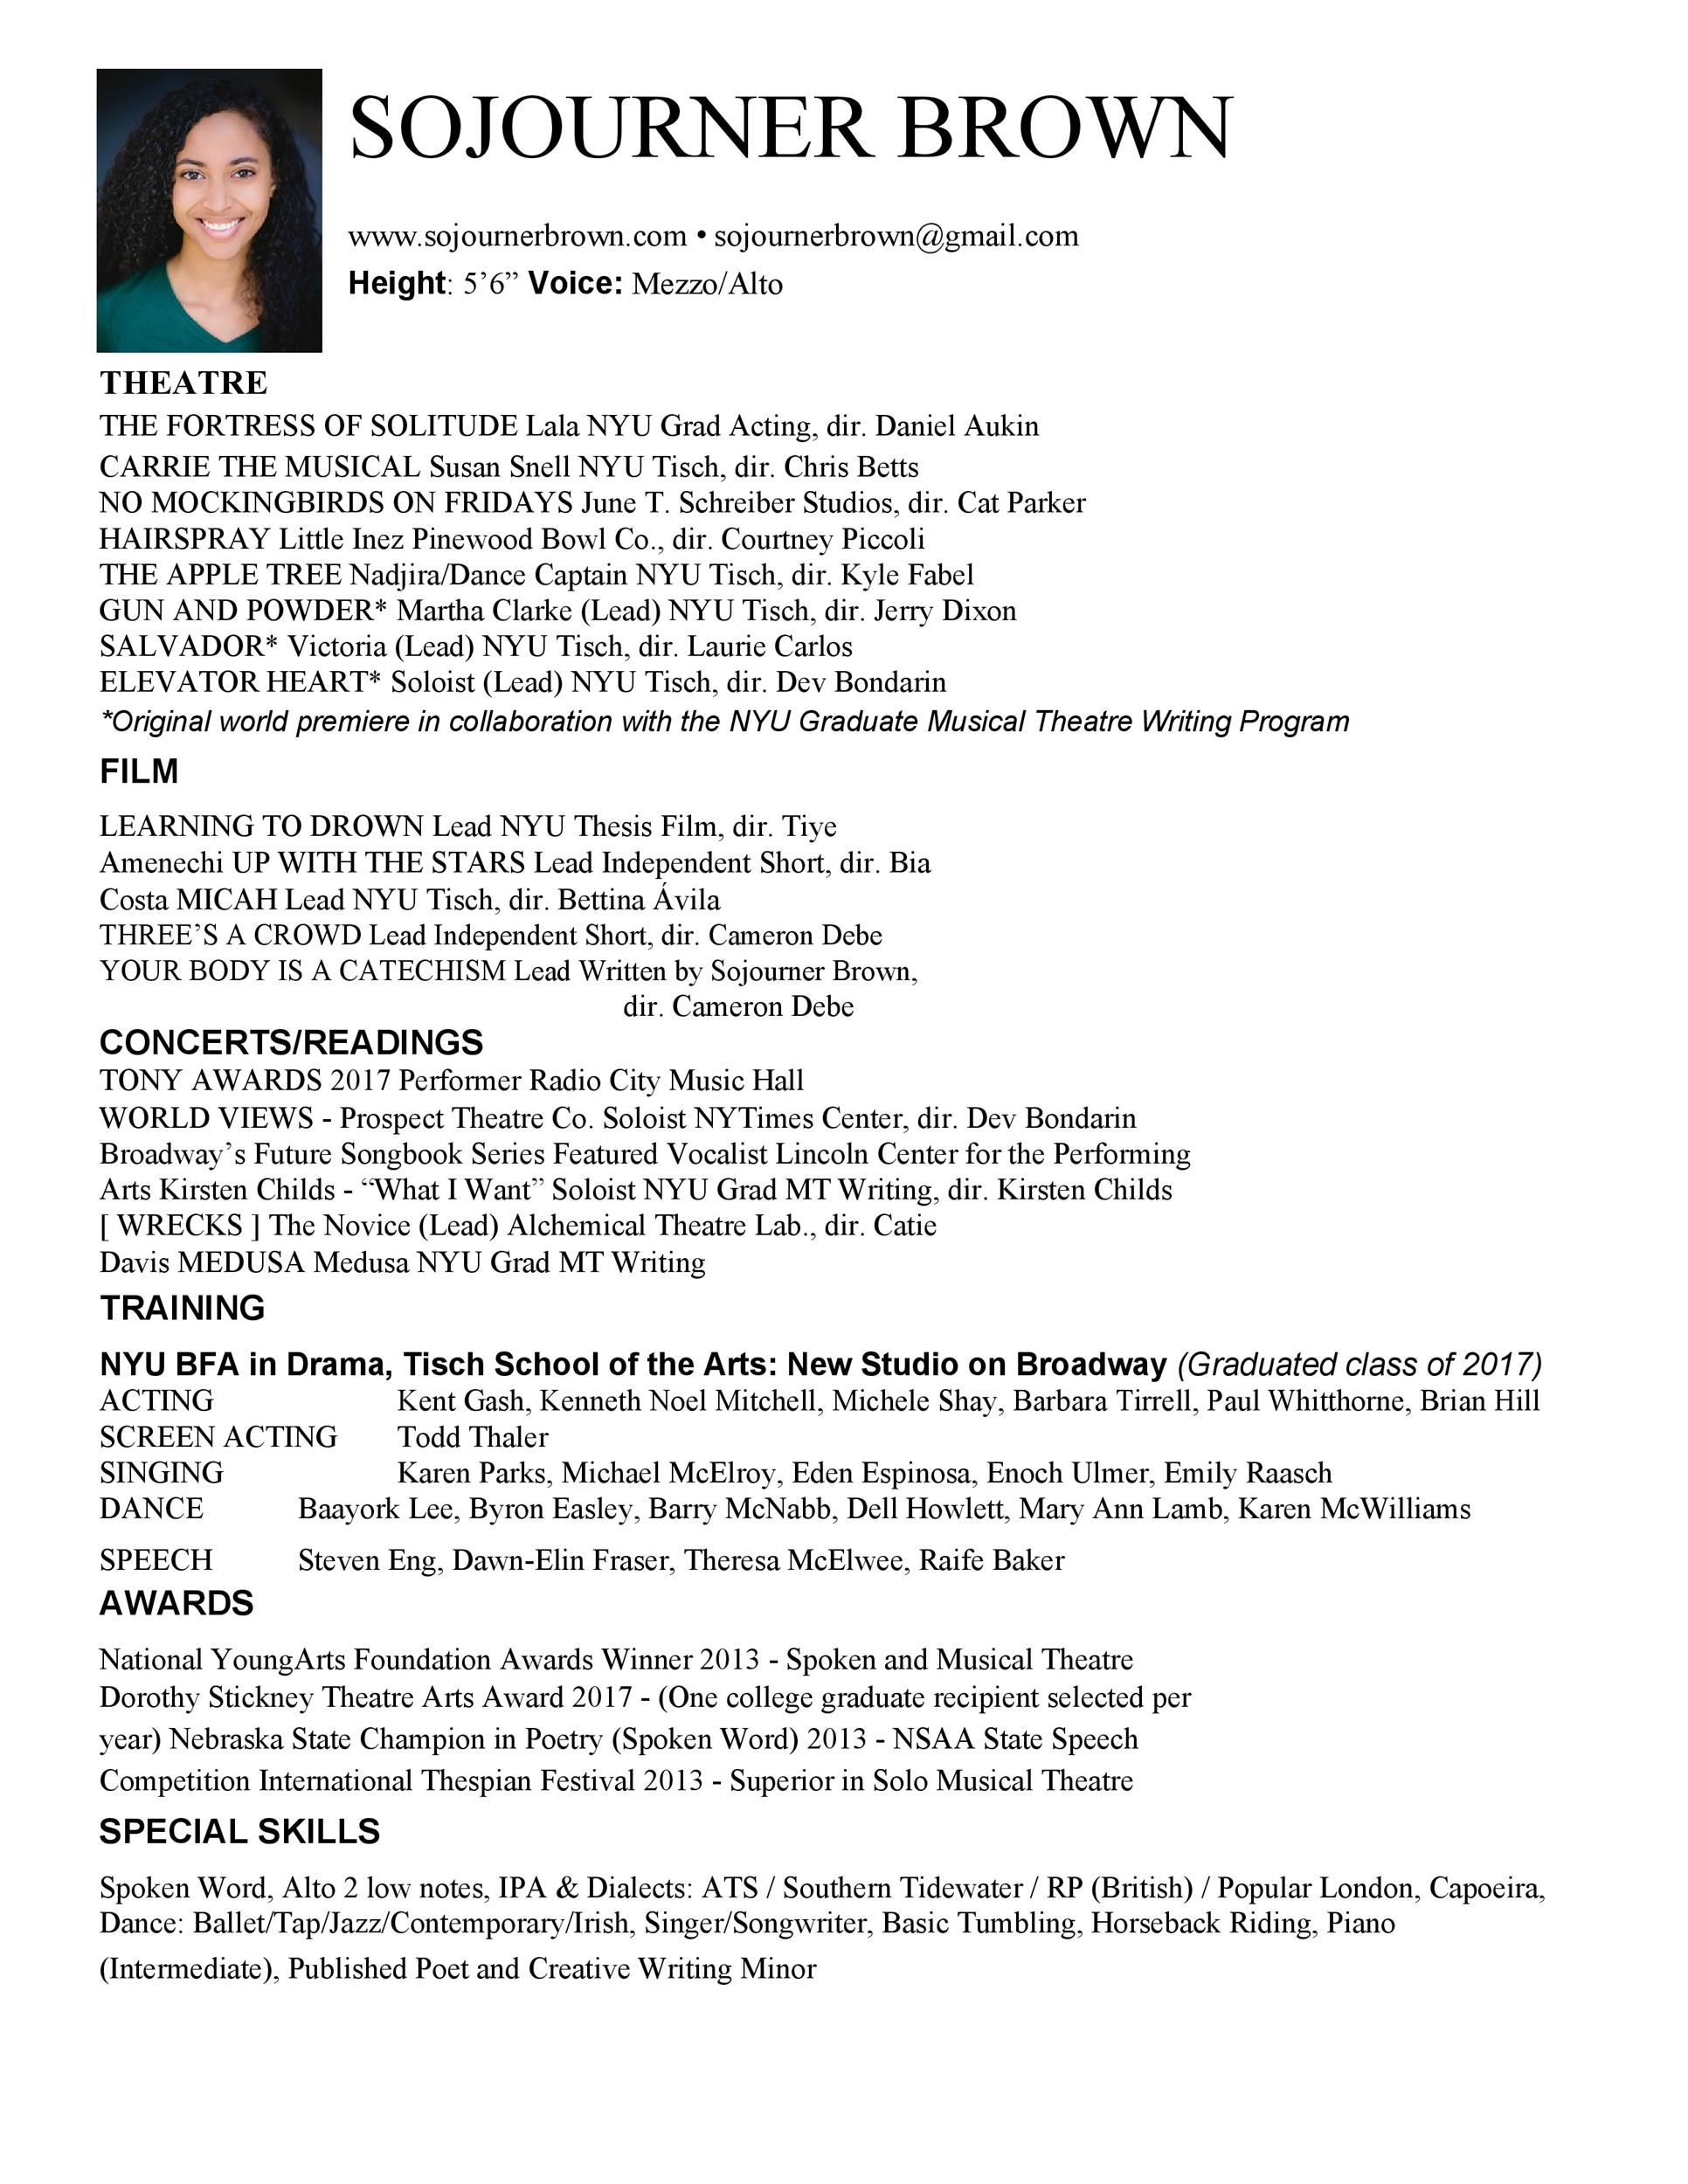 Free acting resume template 33